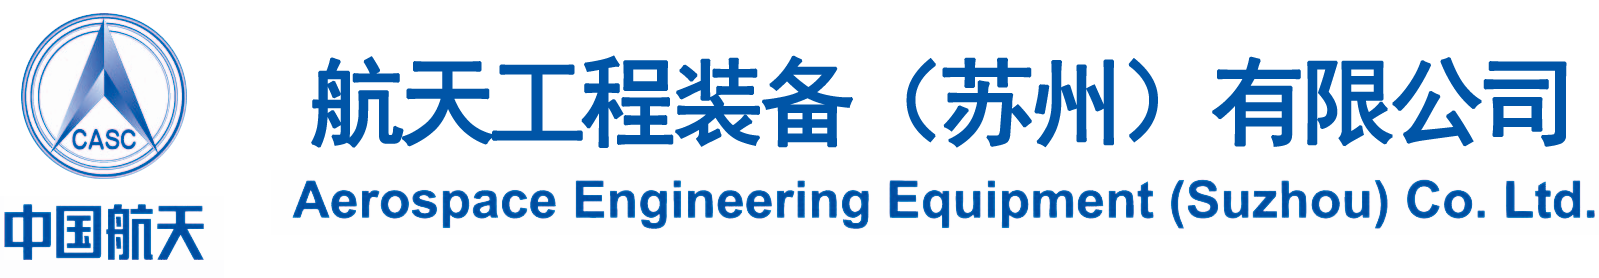 Aerospace Engineering Equipment (Suzhou) Co., Ltd.